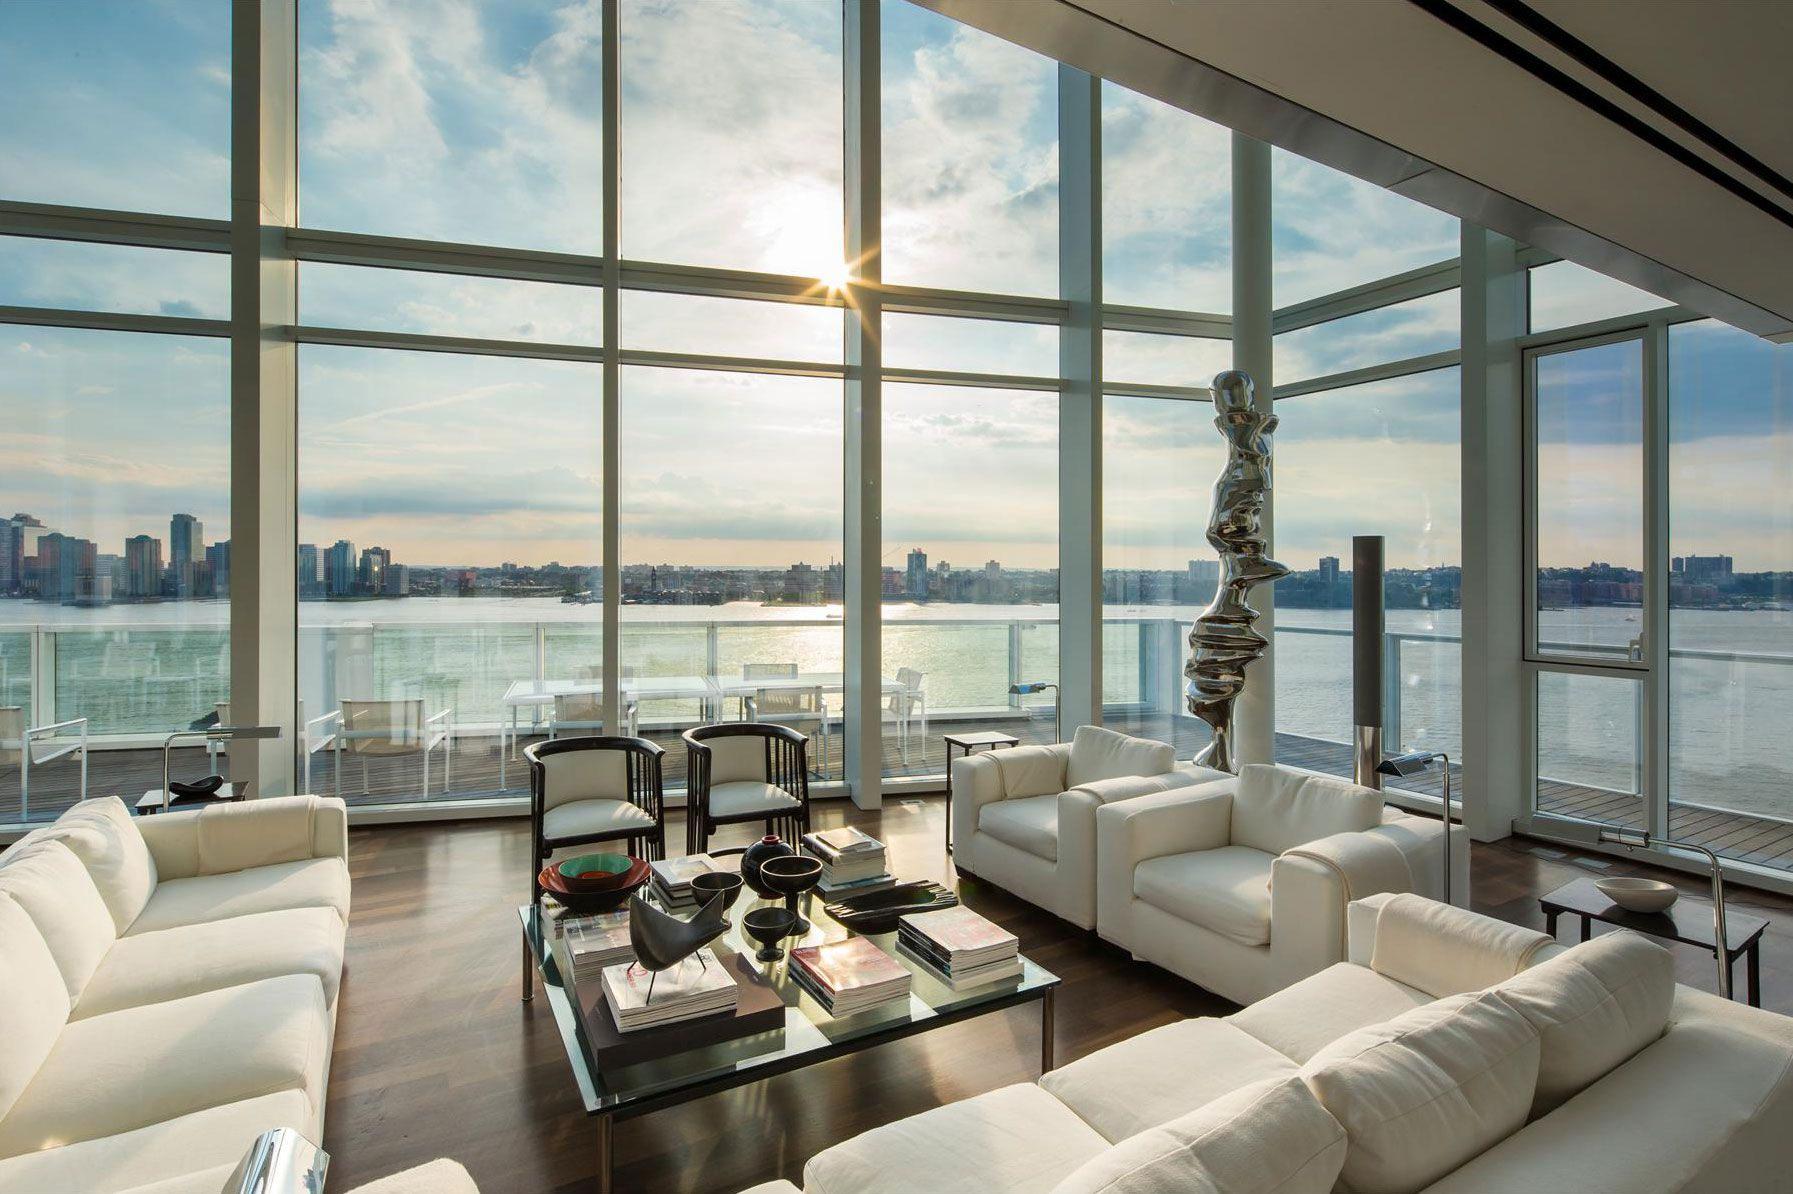 Elegance-in-the-Meatpacking-District-03